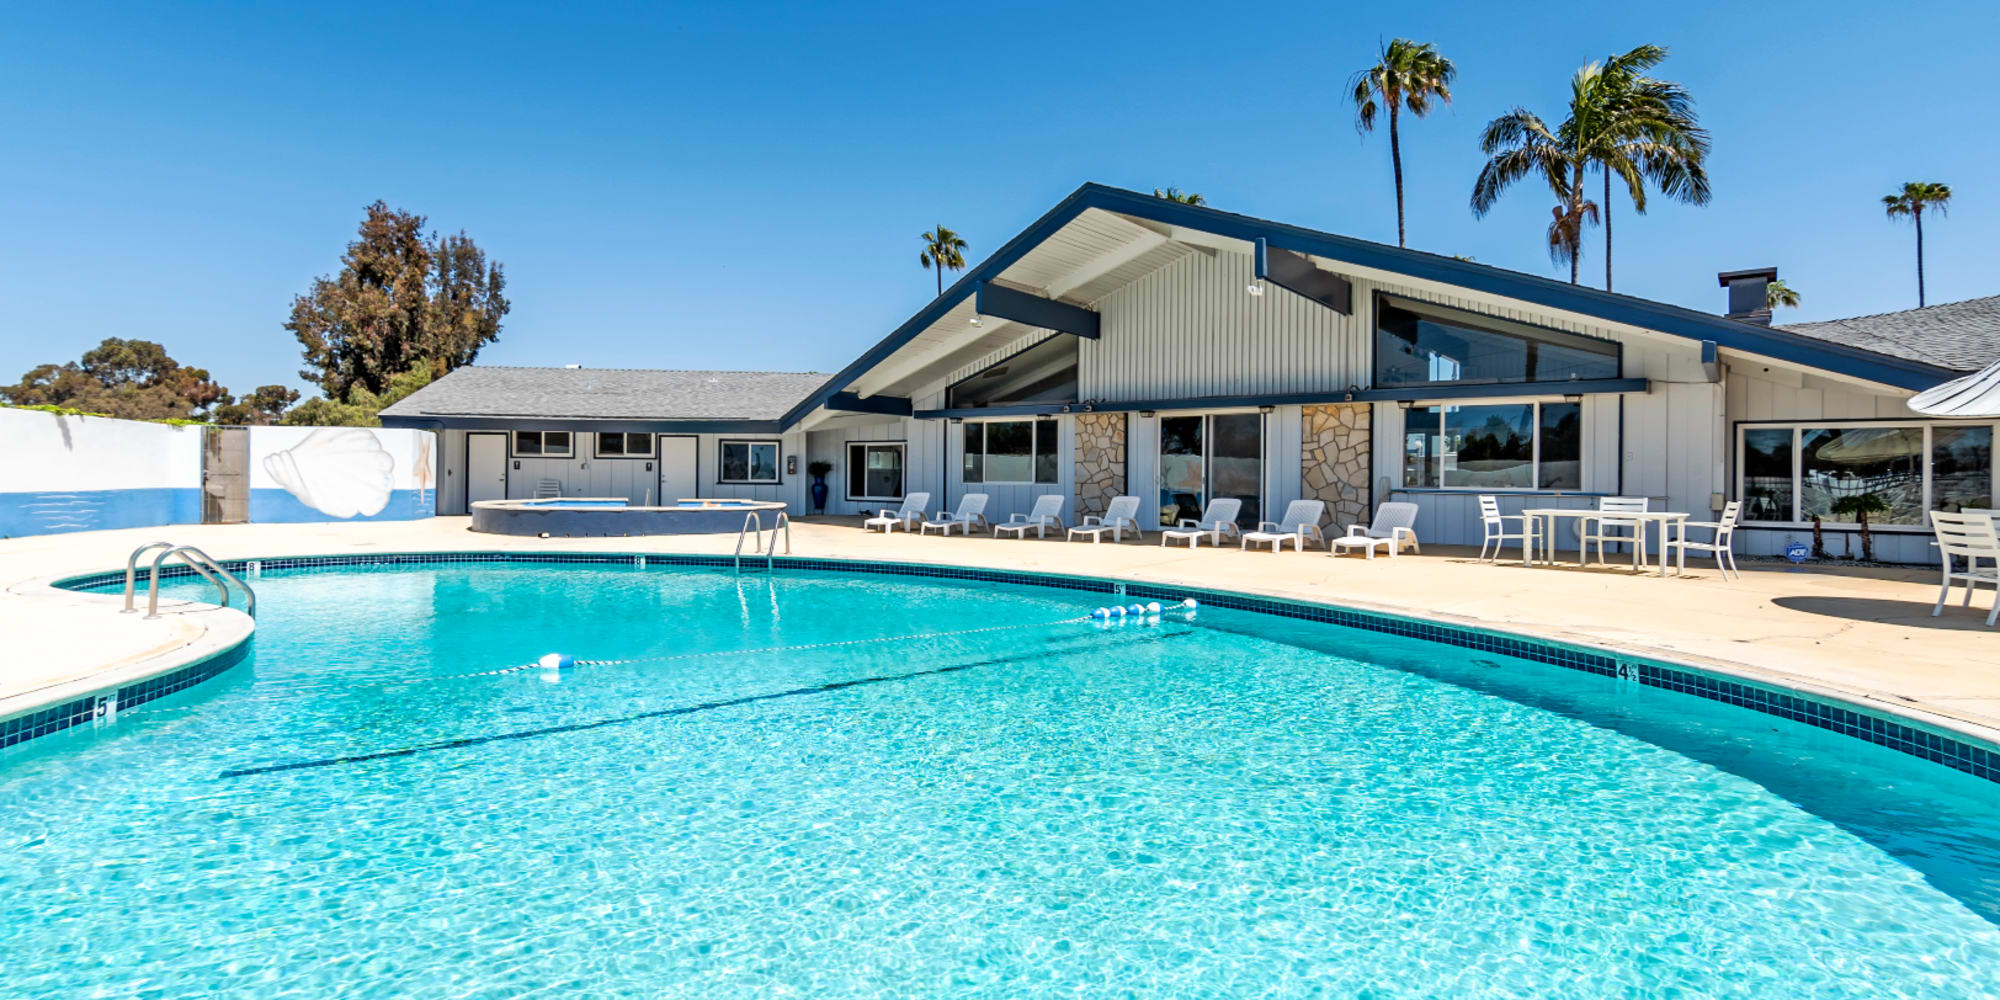 Manufactured home communities with FollettMHC in Sacramento, California